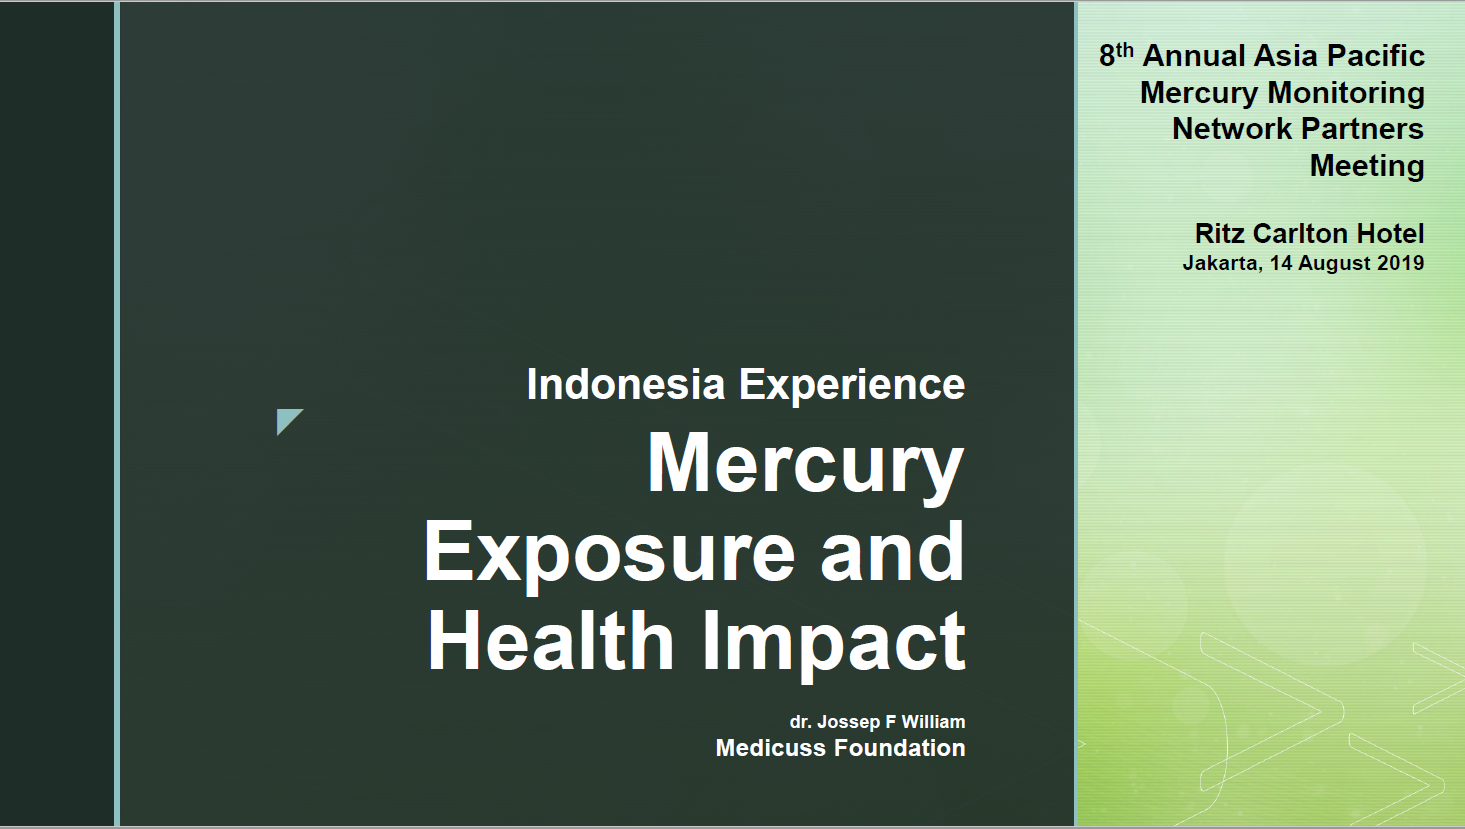 First page of Mercury Exposures and Health Impacts in Indonesia